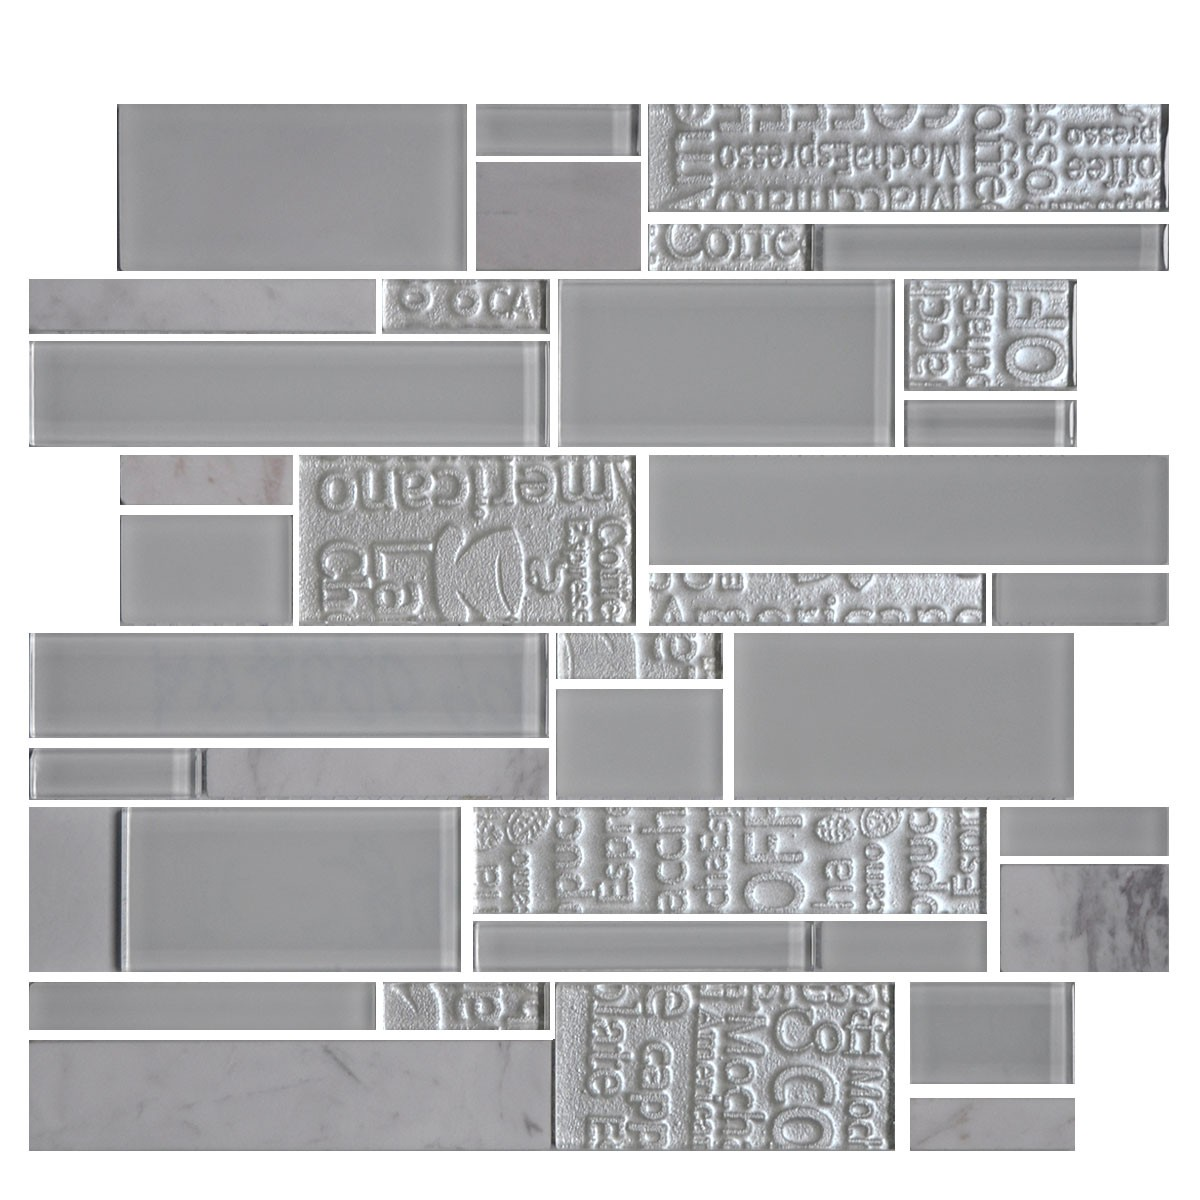 13.2 in. x 11.8 in. Glass Stone Blend Strip Mosaic Tile in Grey - 8mm Thickness (DK-AD808099)